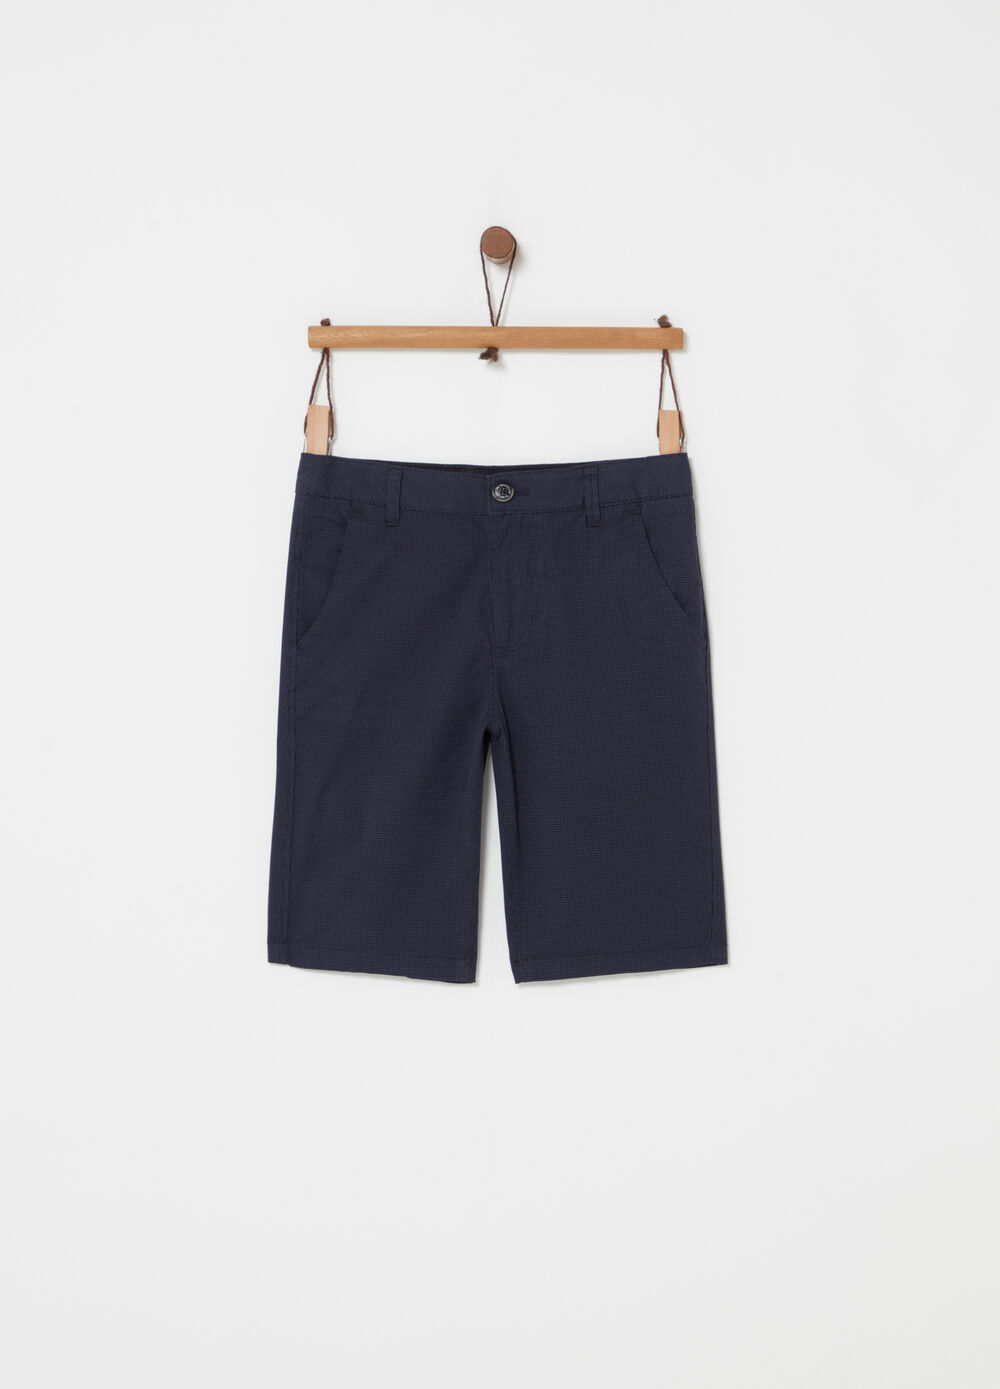 Chino shorts with pockets and button